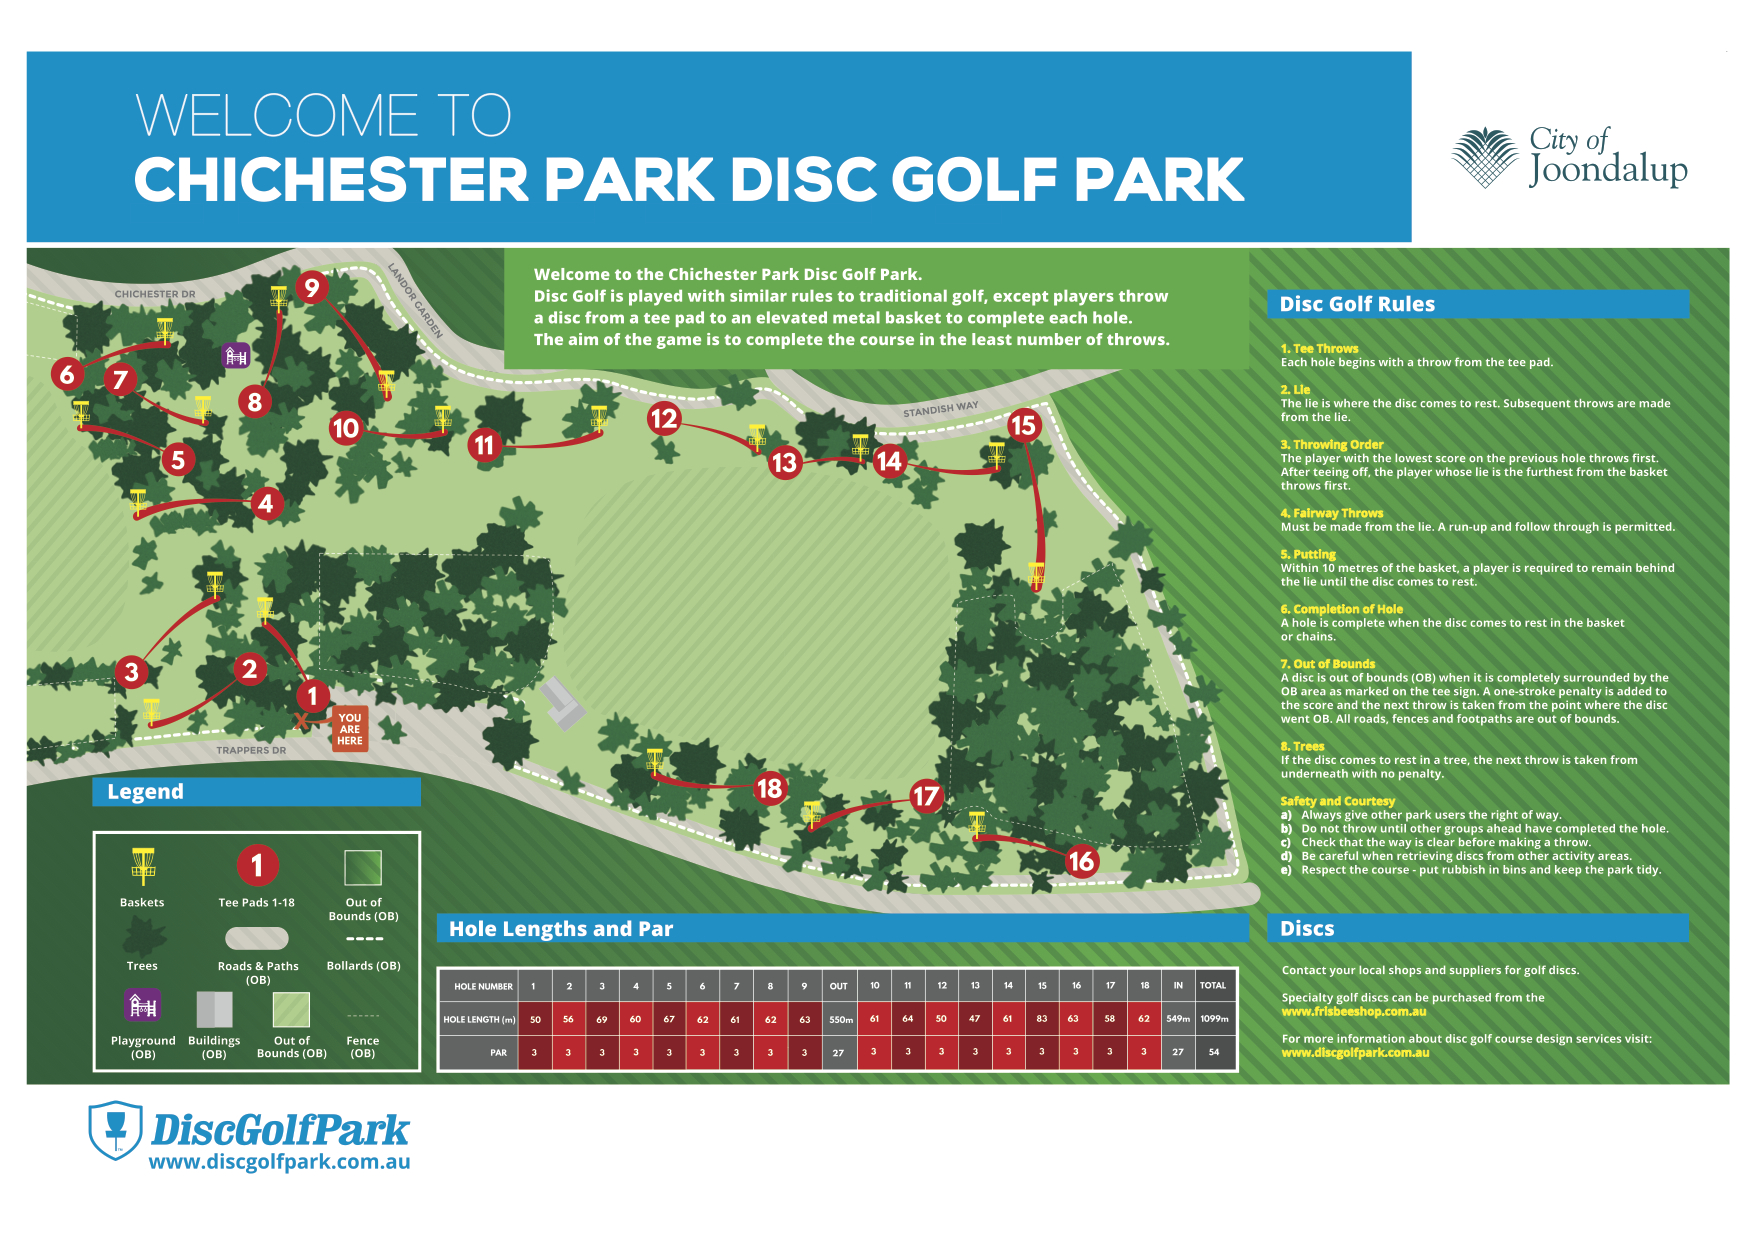 Chichester Park Disc Golf Park